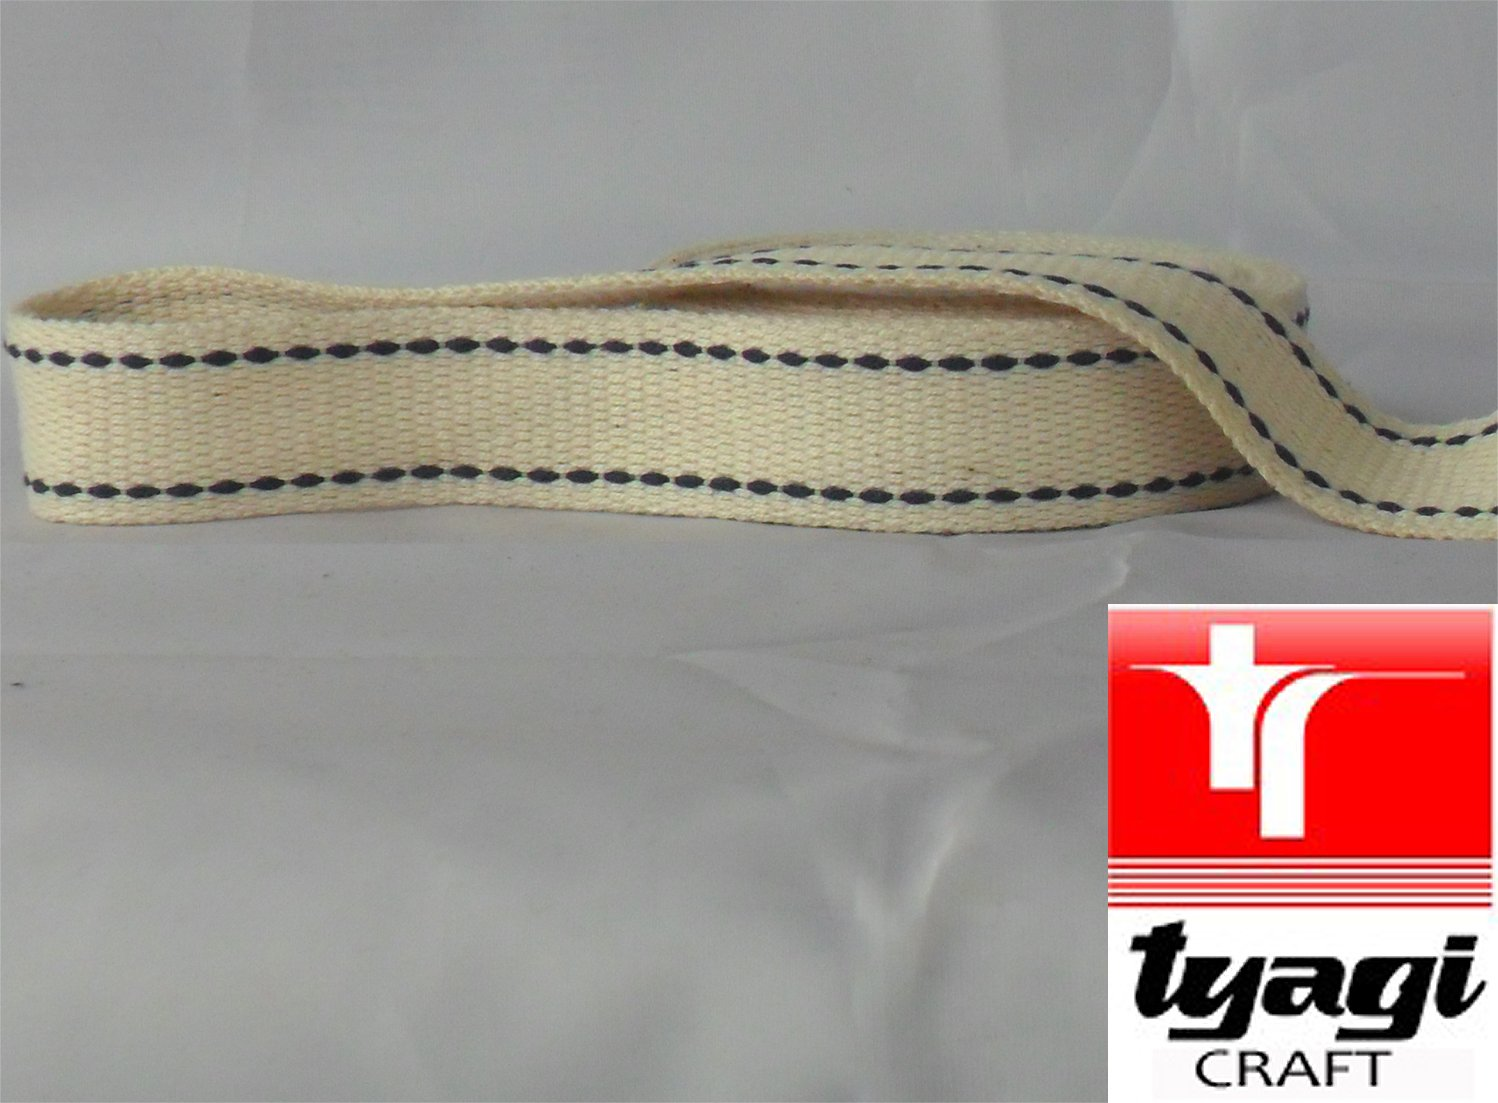 25mm Pure Cotton Tape Strong Thick Webbing Strap Tent Upholestry Bags, Edging, Craft, Dress, Belts Beige / Off White 1MTR Tyagi Craft